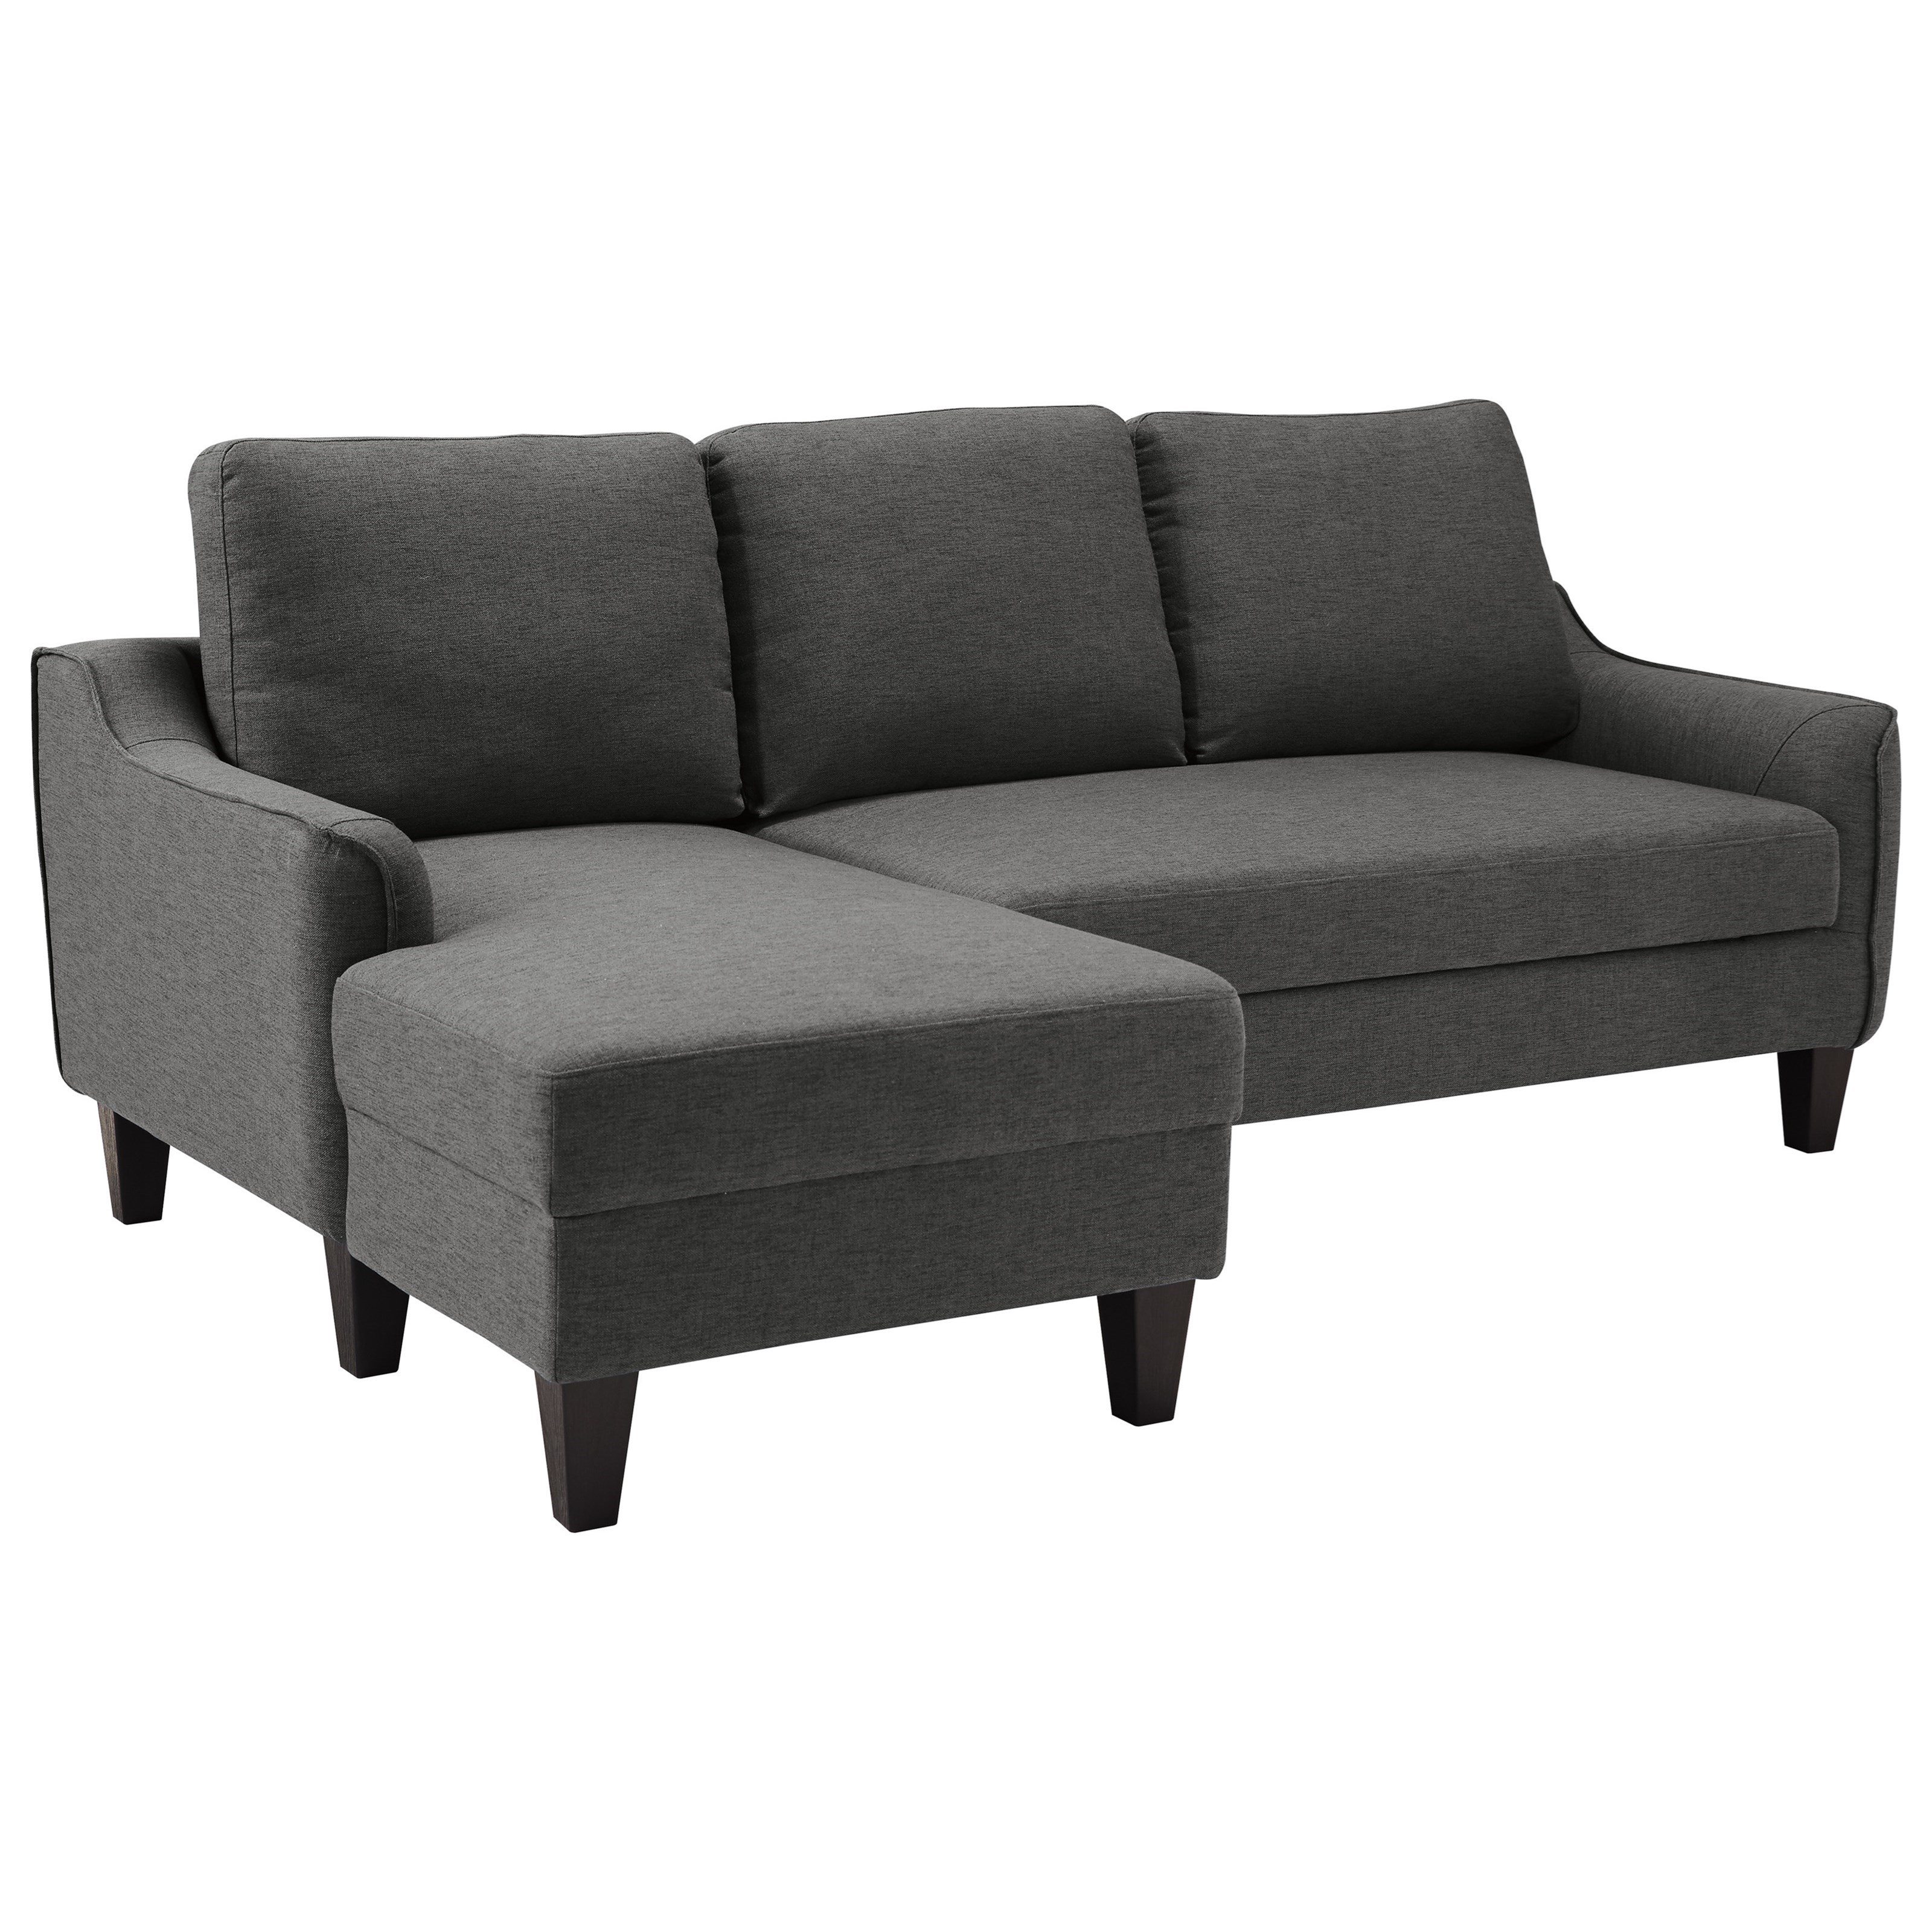 products item sofa chaise by trim width contemporary threshold height darcy blue signature design ashley bluesofa